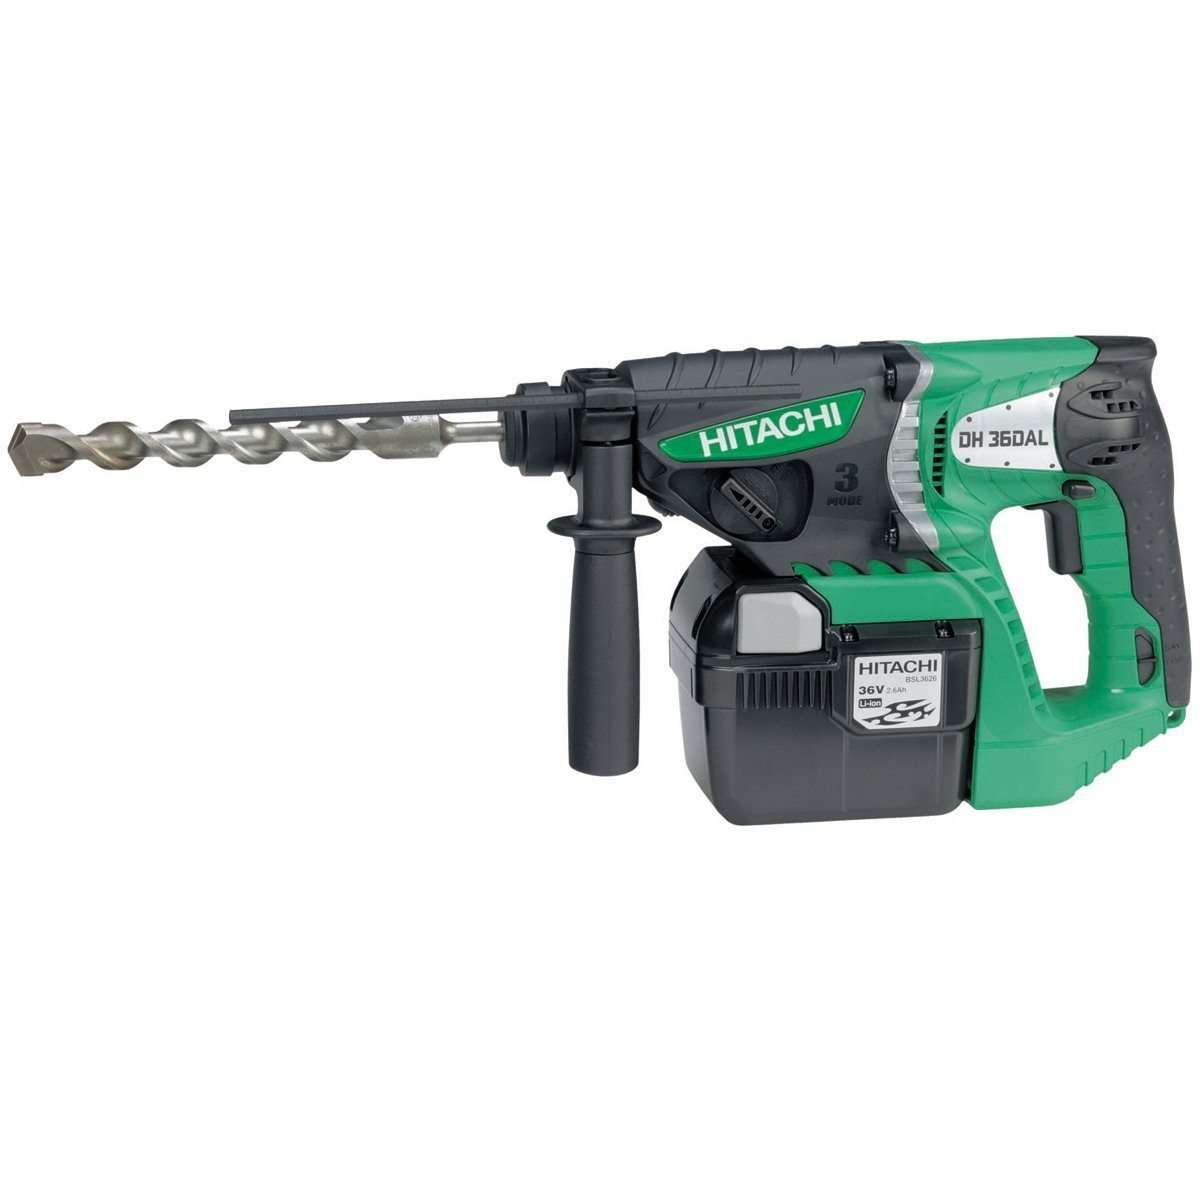 Hitachi DH36DAL 36V SDS-Plus Rotary Hammer Drill 3 Mode 2 x 2.6Ah Lithium-Ion batteries